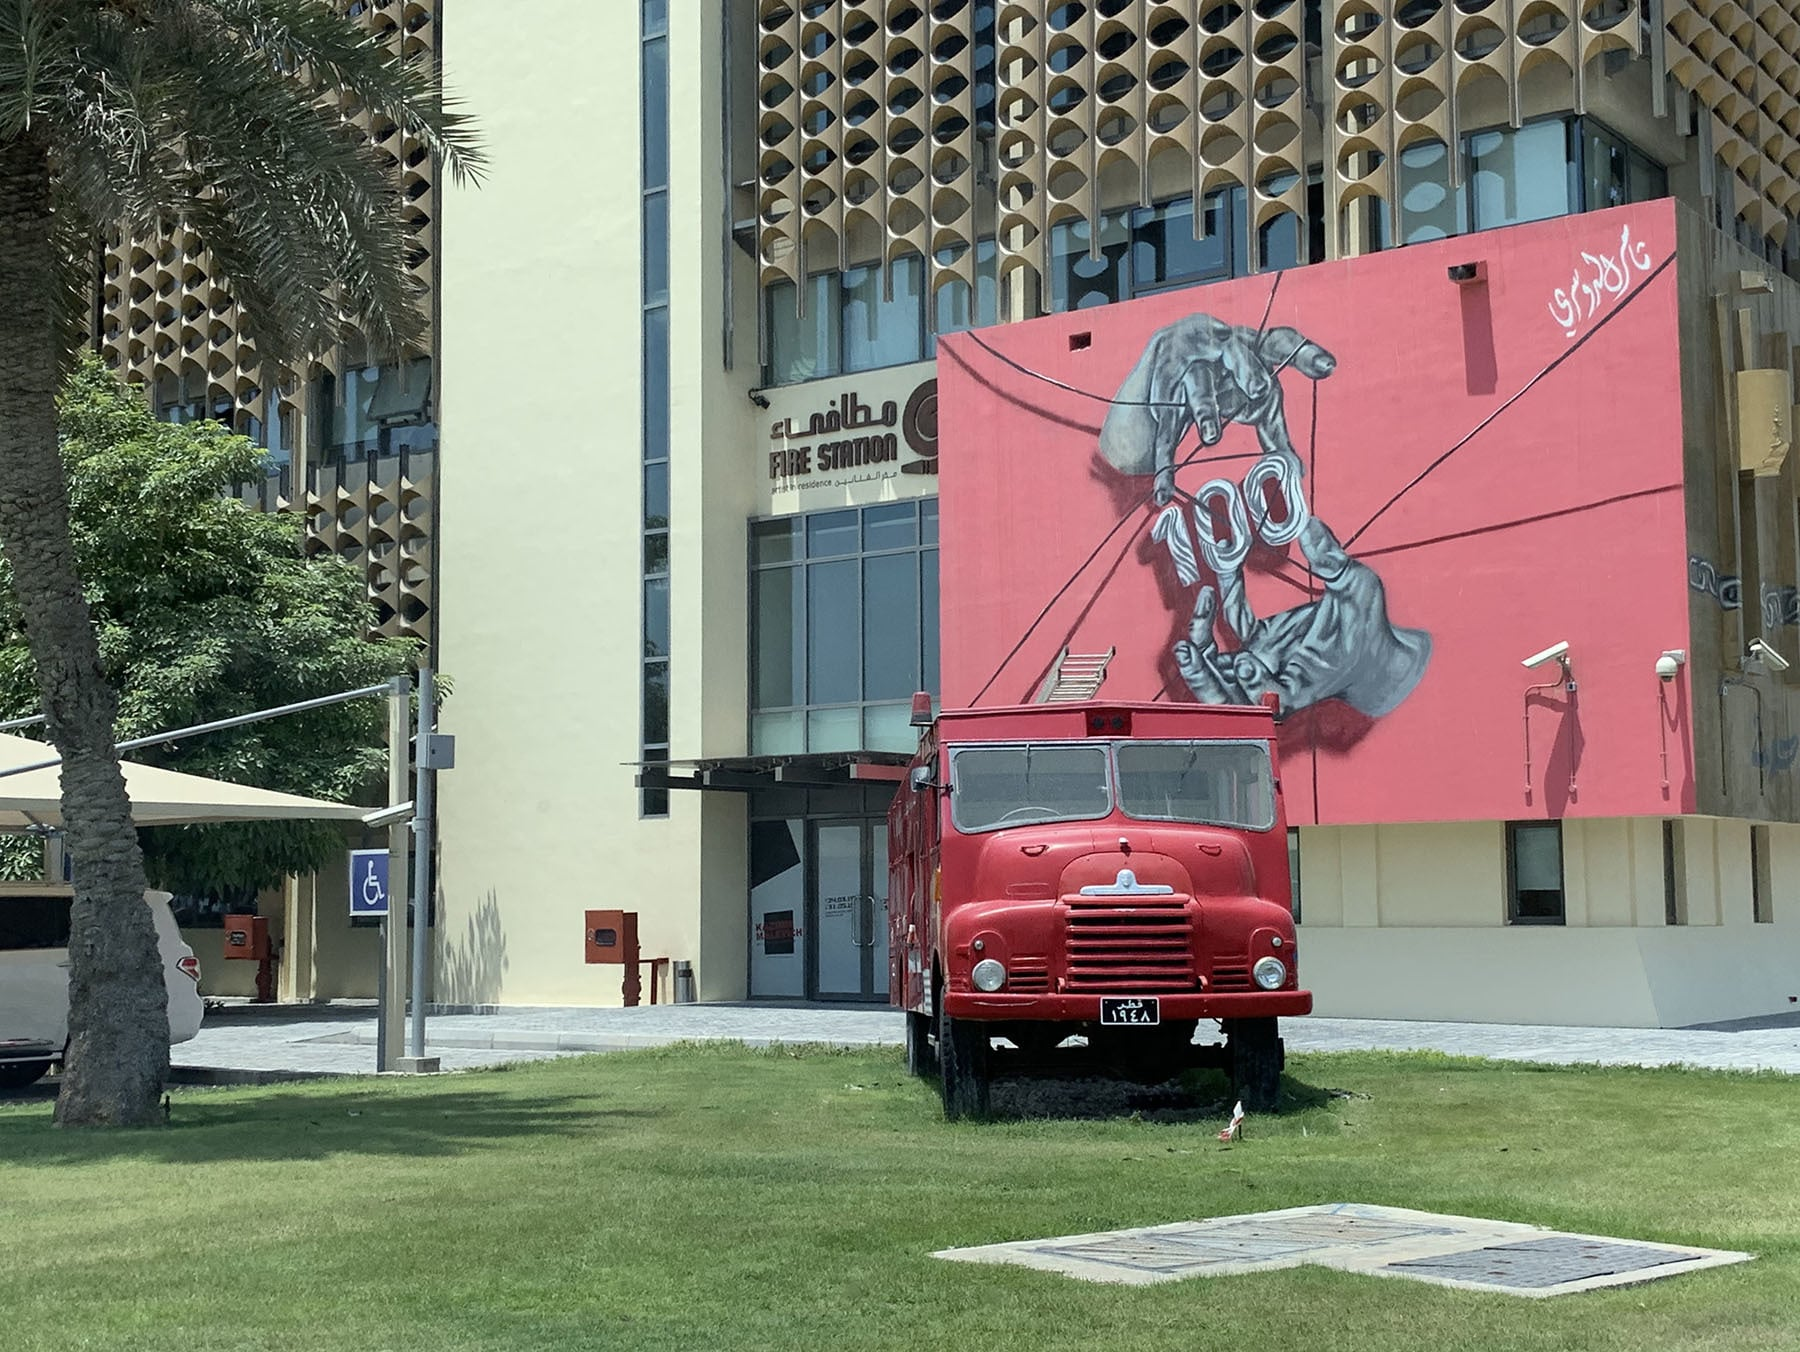 Doha fire station, built in the 1980s, now functions as a creative space for artists.